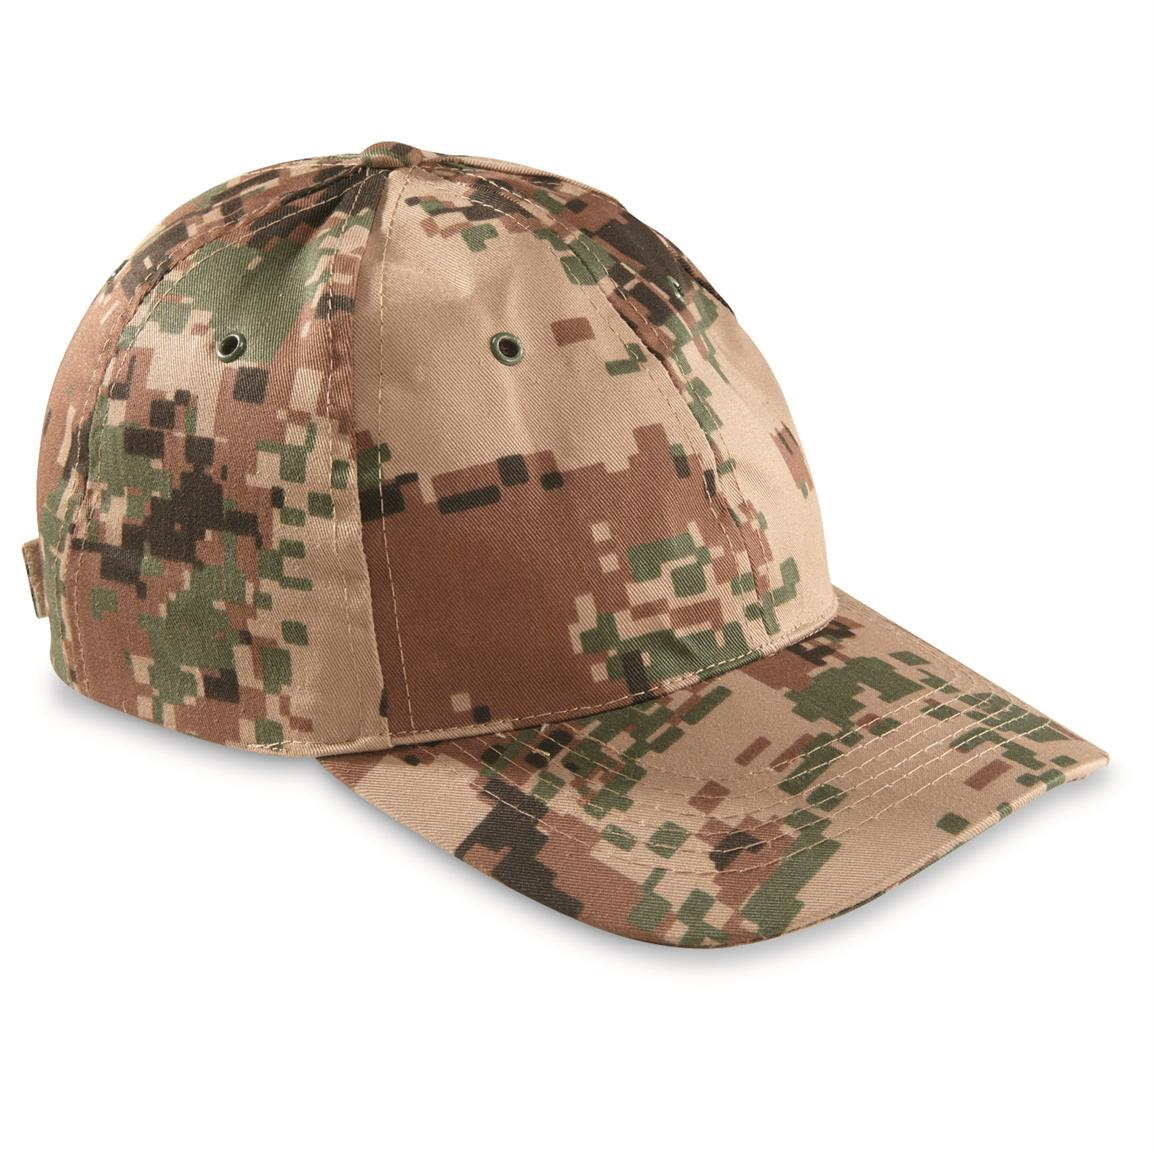 Jordanian Military Surplus Ball Caps, 2 Pack, Desert Camo